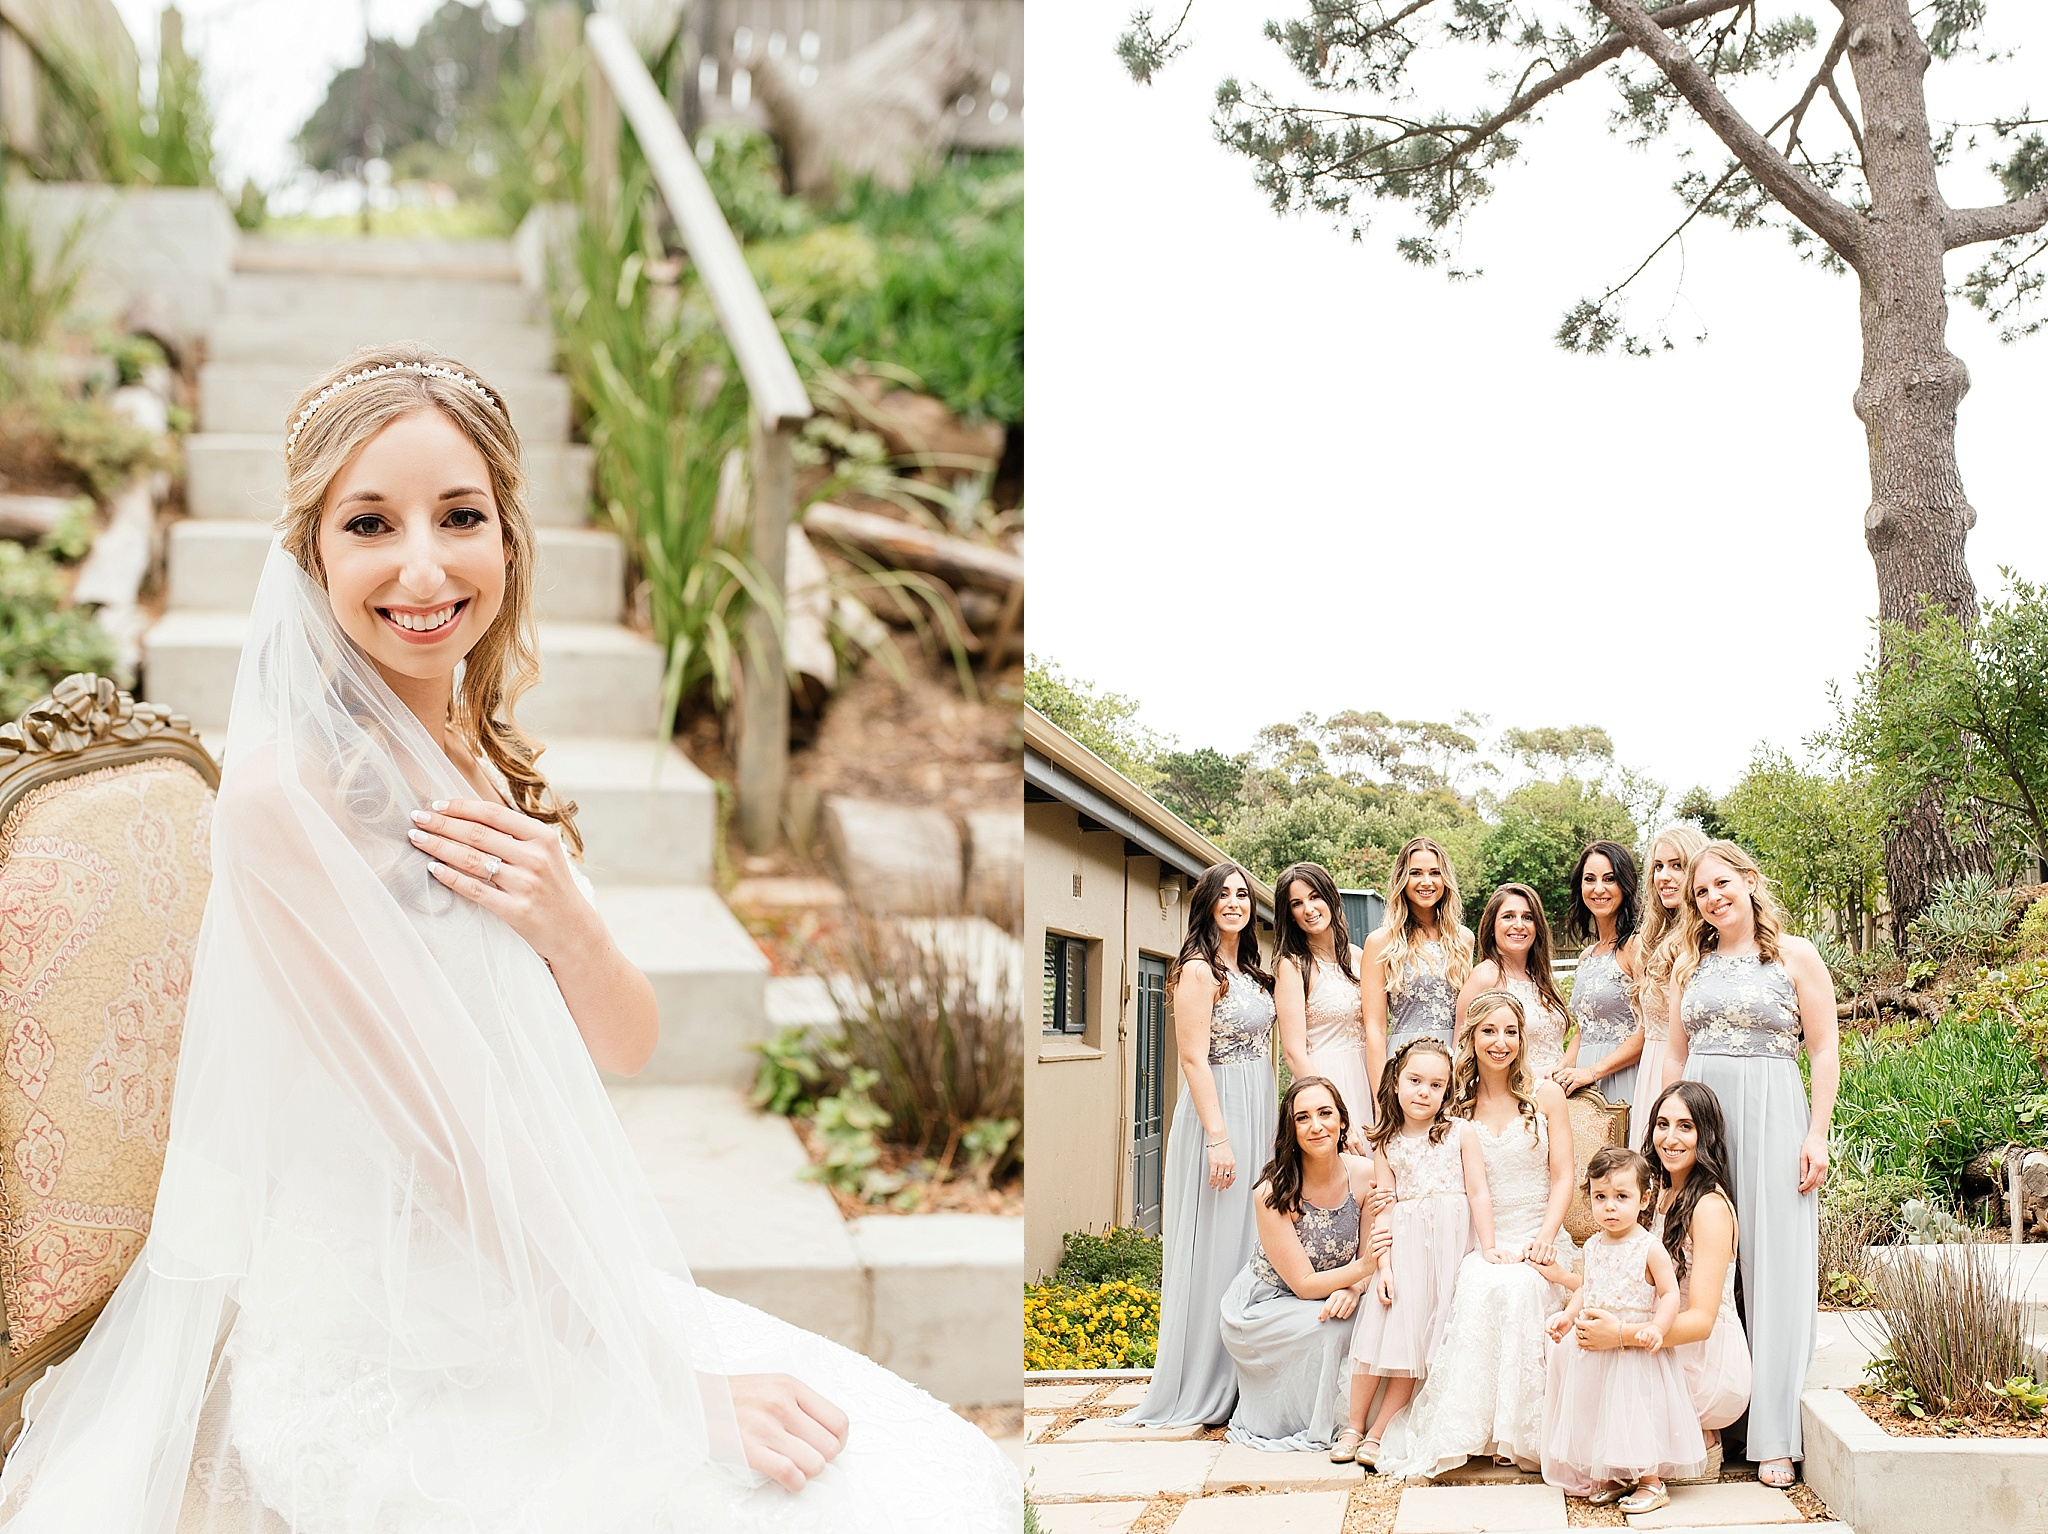 Cape Town Wedding Photographer Darren Bester - SuikerBossie - Stephen and Mikaela_0015.jpg